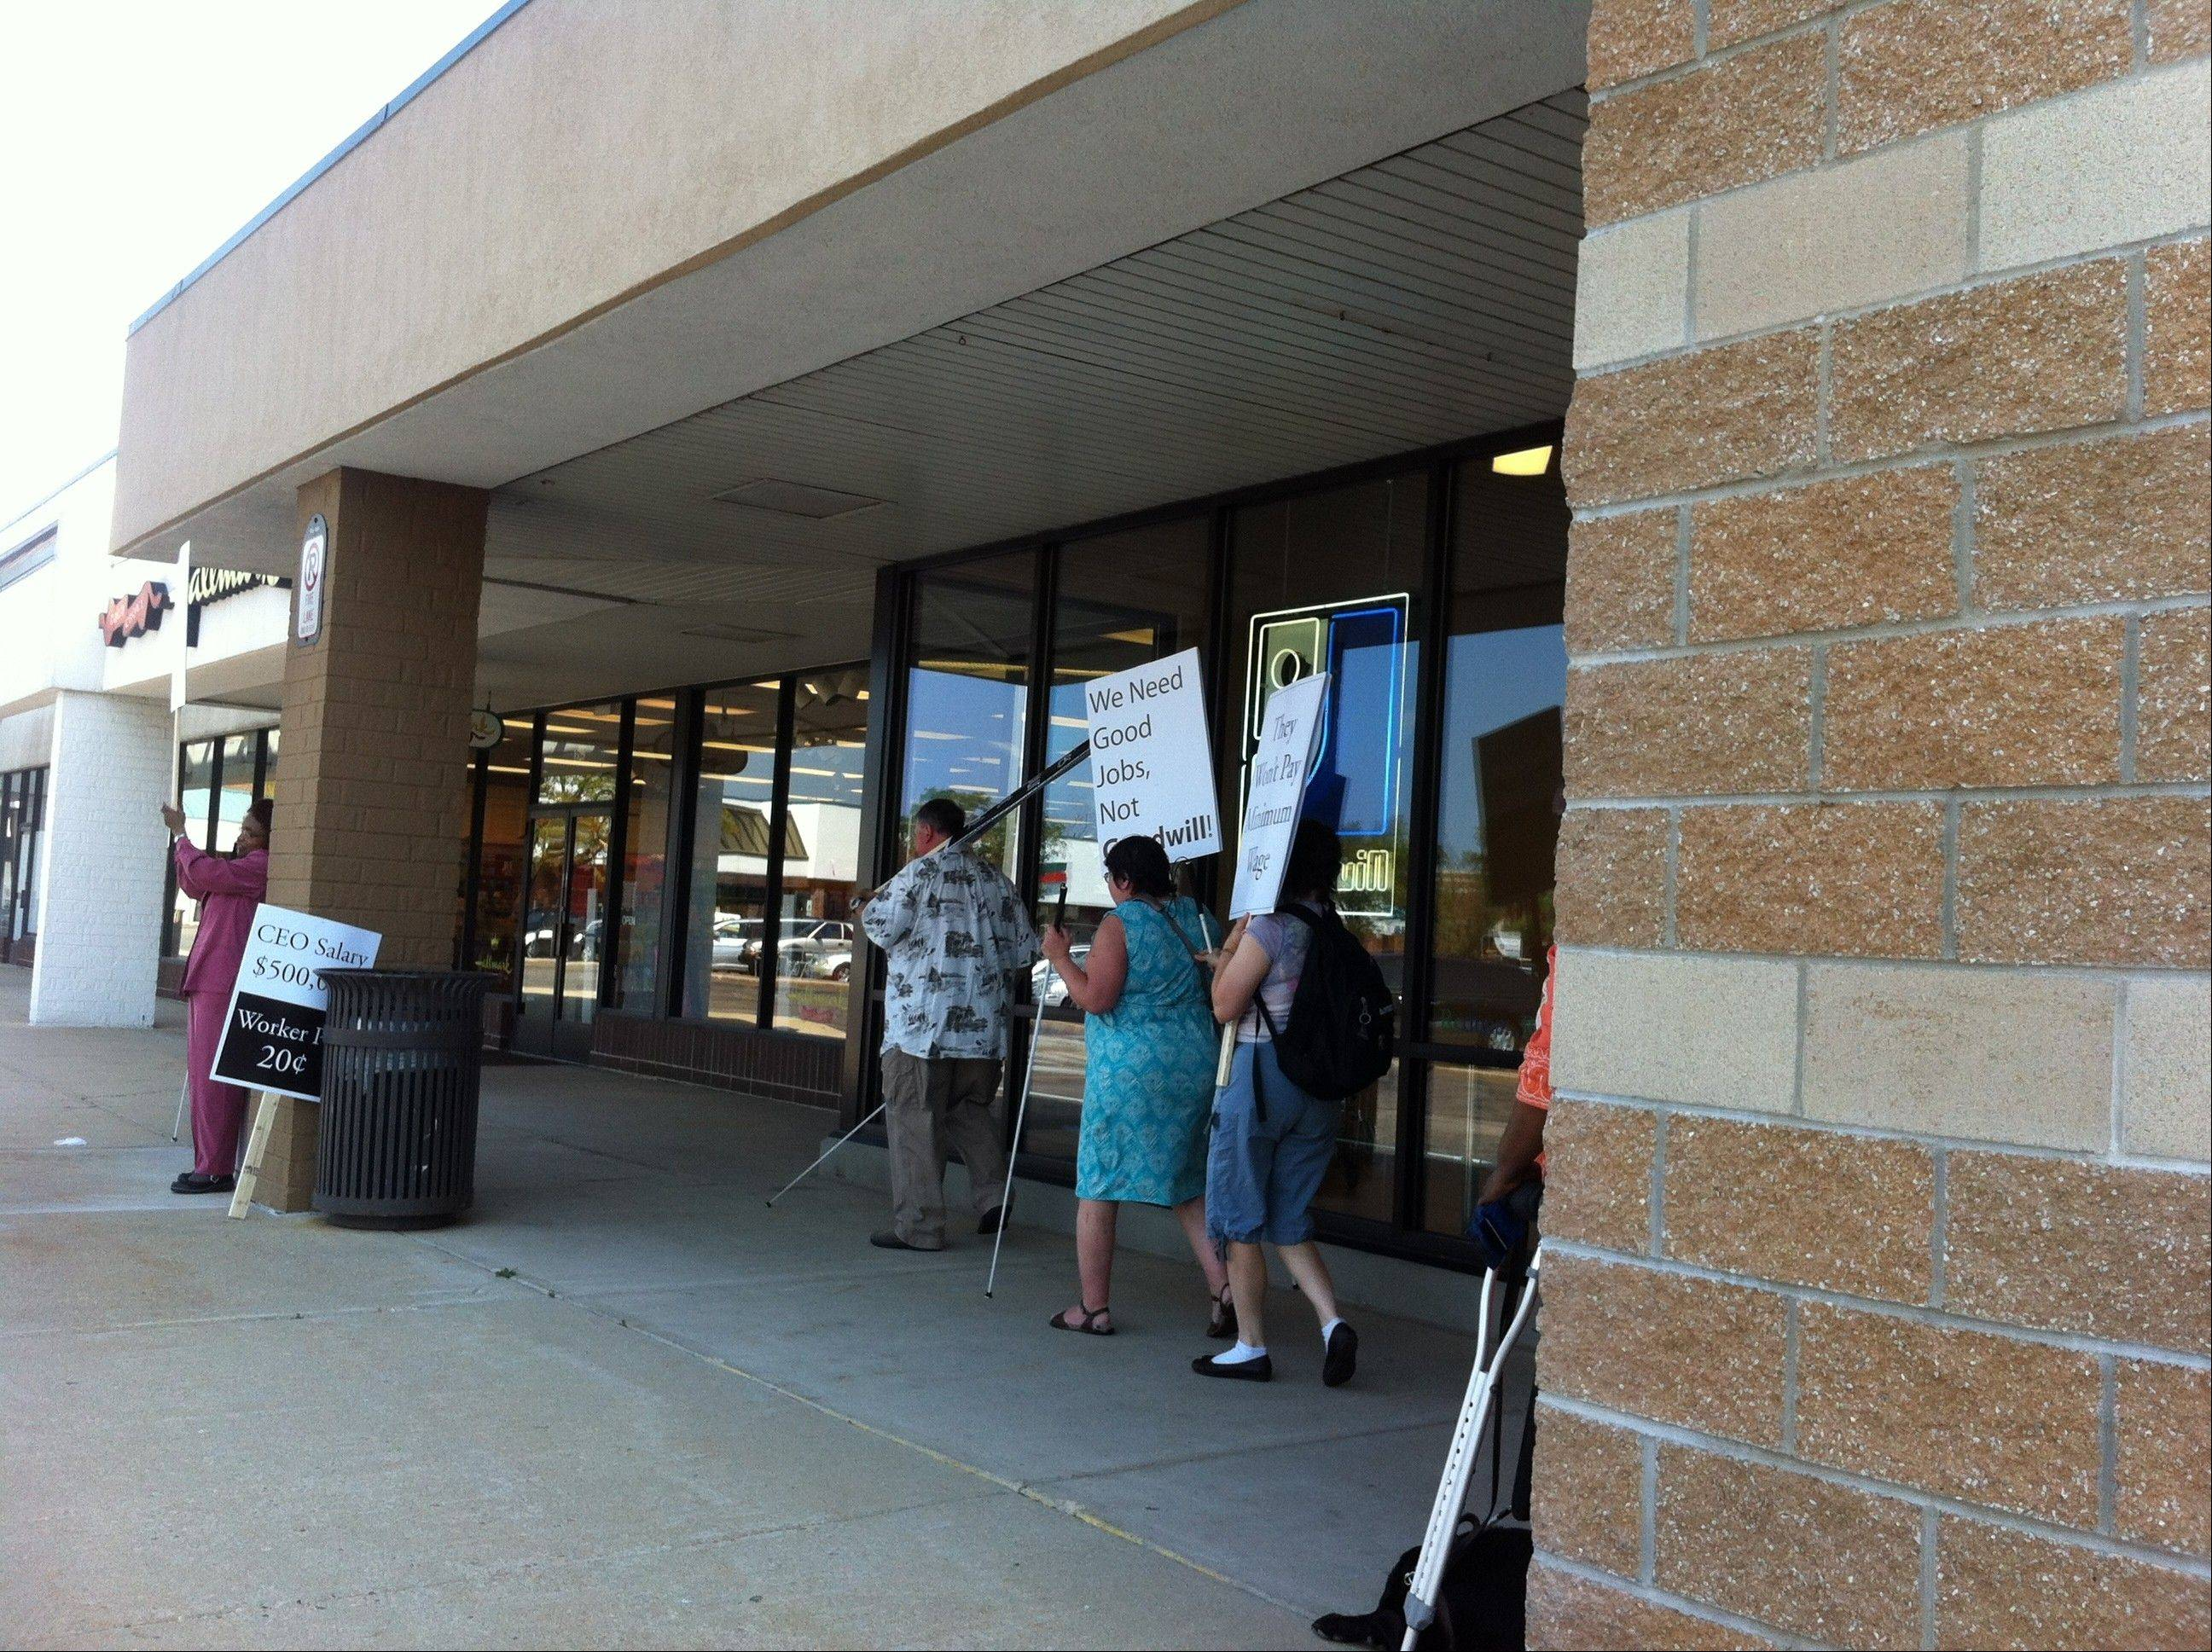 Protesters from the National Federation of the Blind of Illinois march outside the Des Plaines Goodwill Store and Donation Center for what they say are unfair wages paid to some employees.